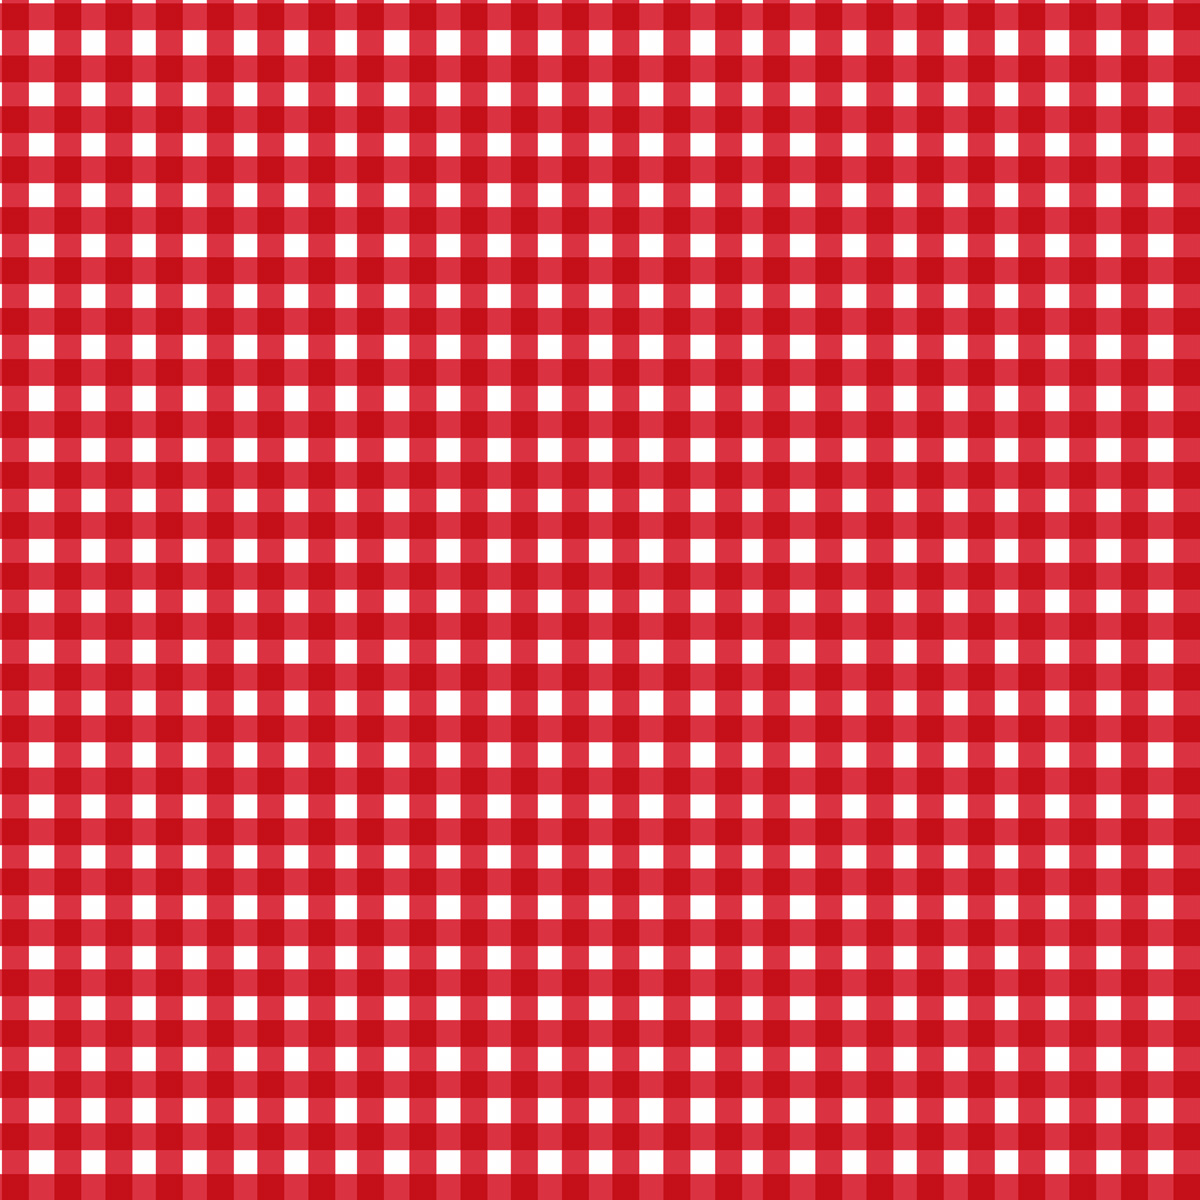 Checkered Scrapbook Paper Digi Scrapbook Paper Pack